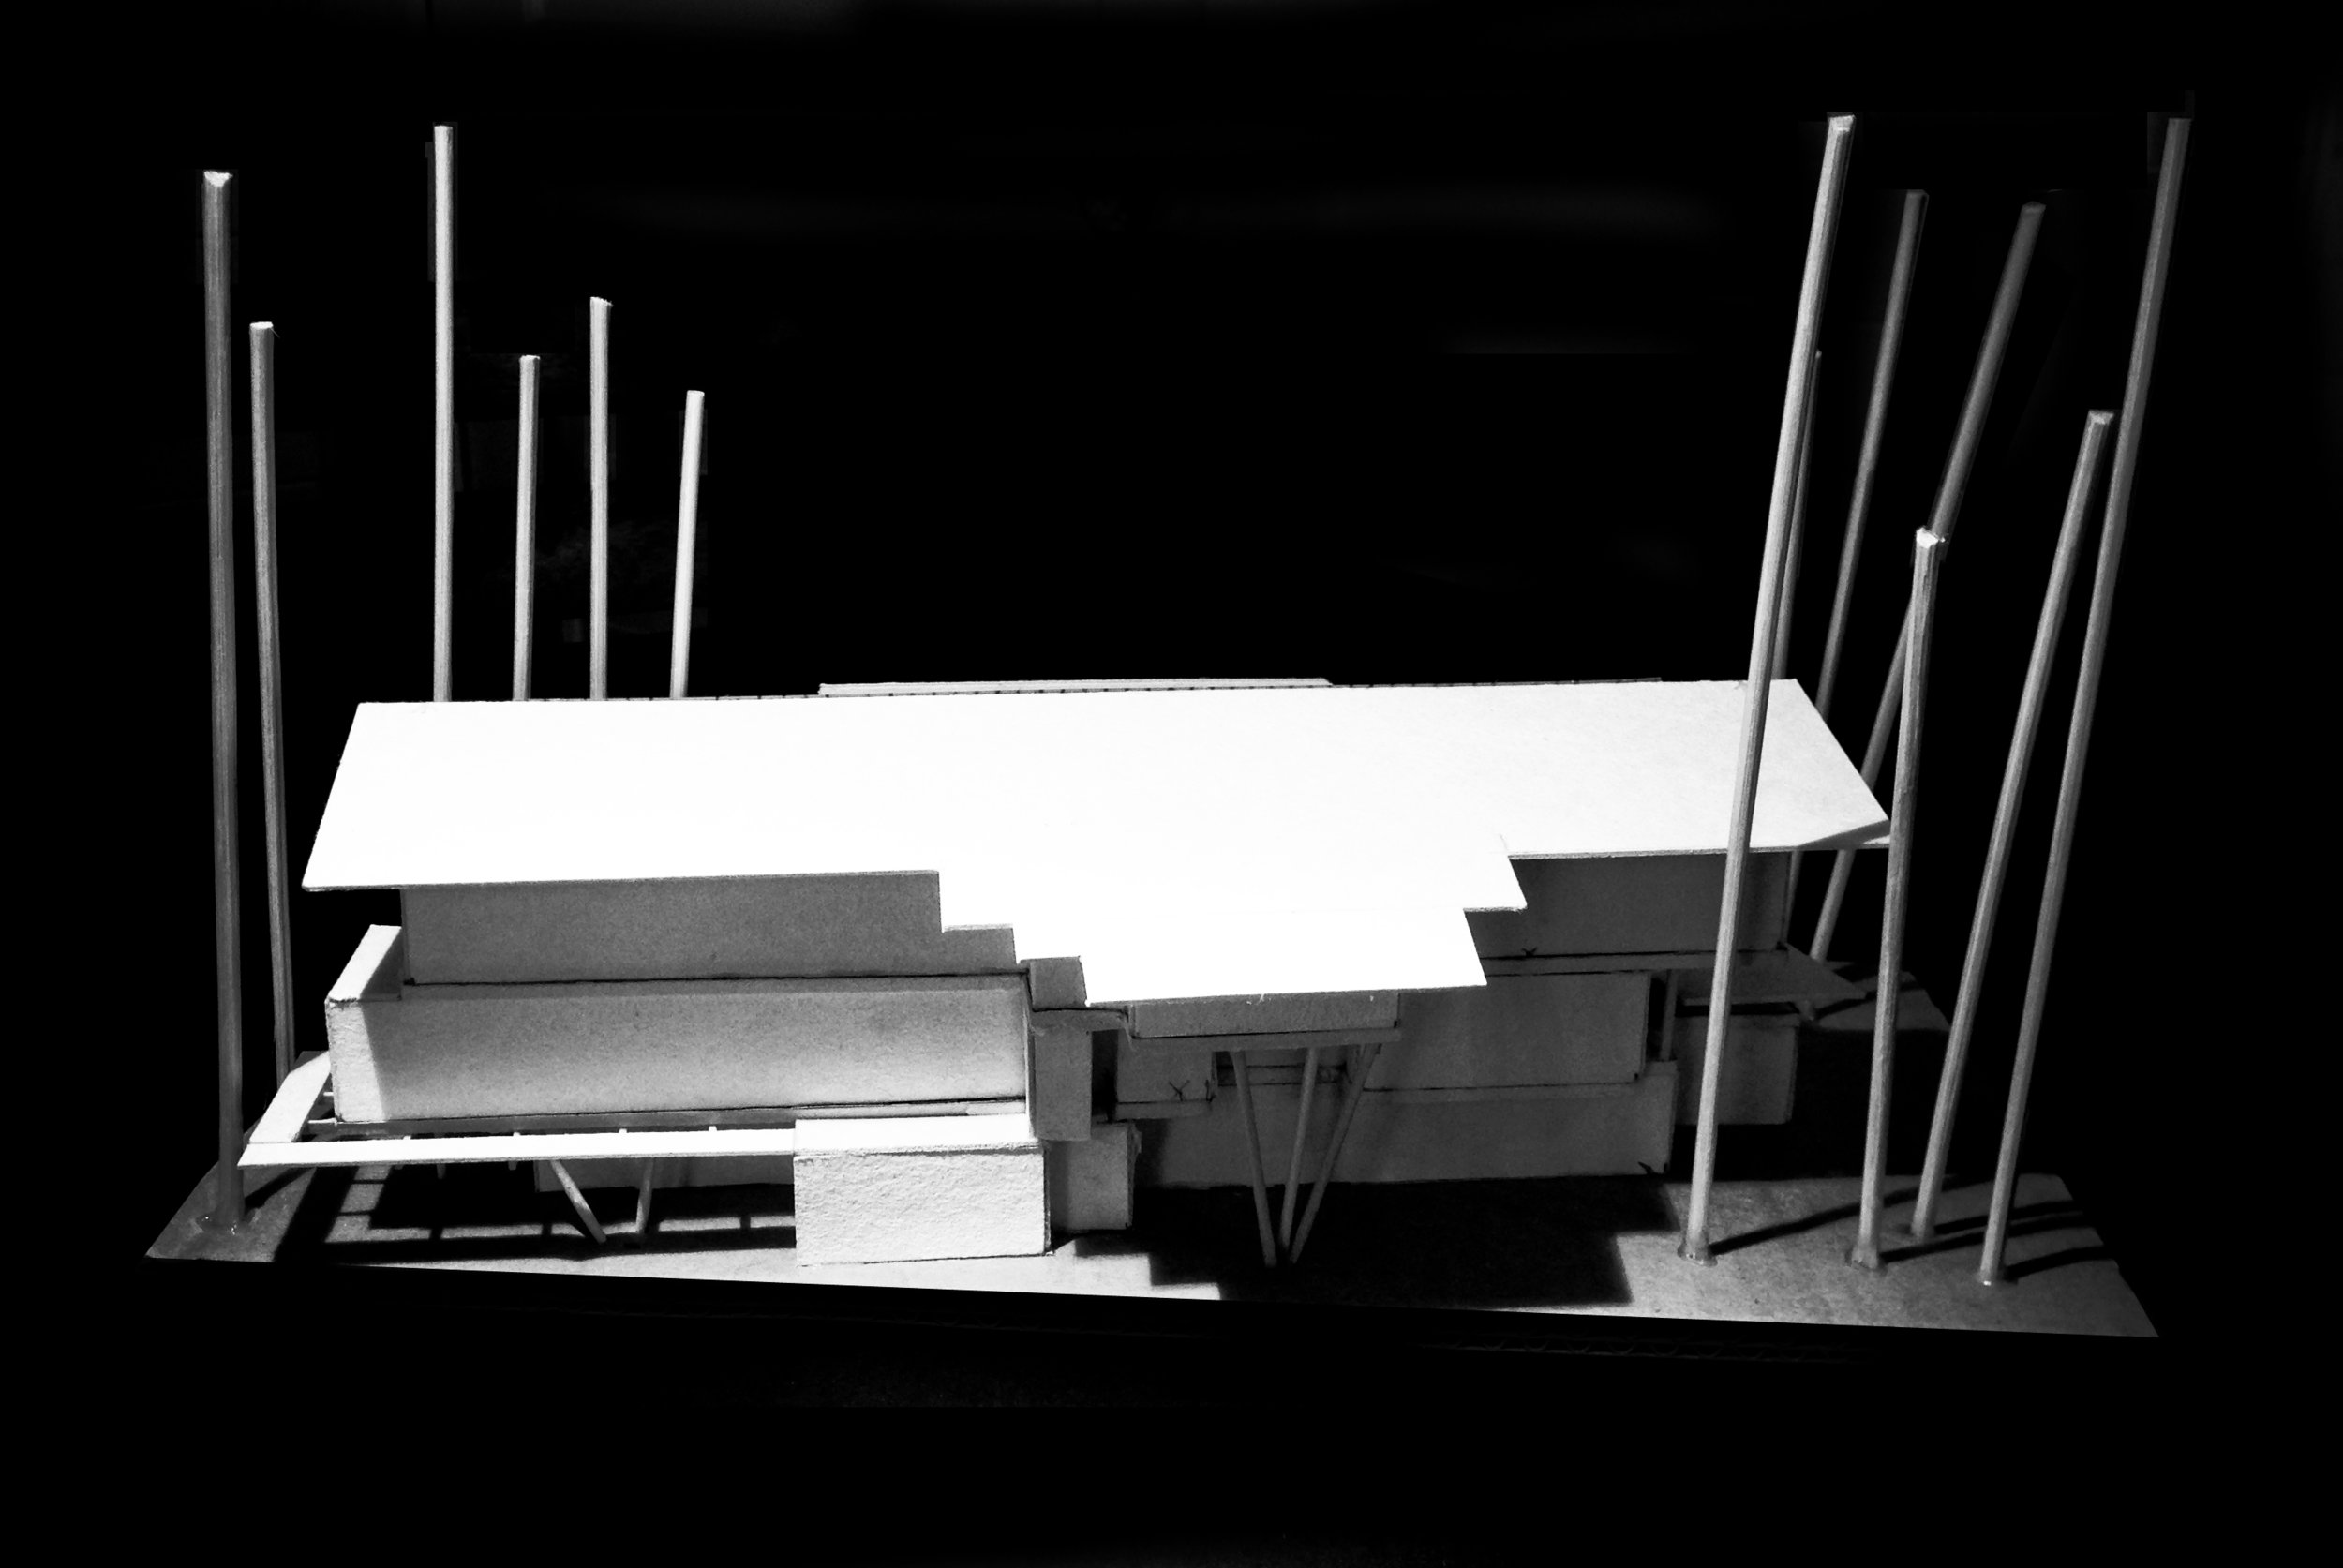 3 Storey Building design model - Parkside View